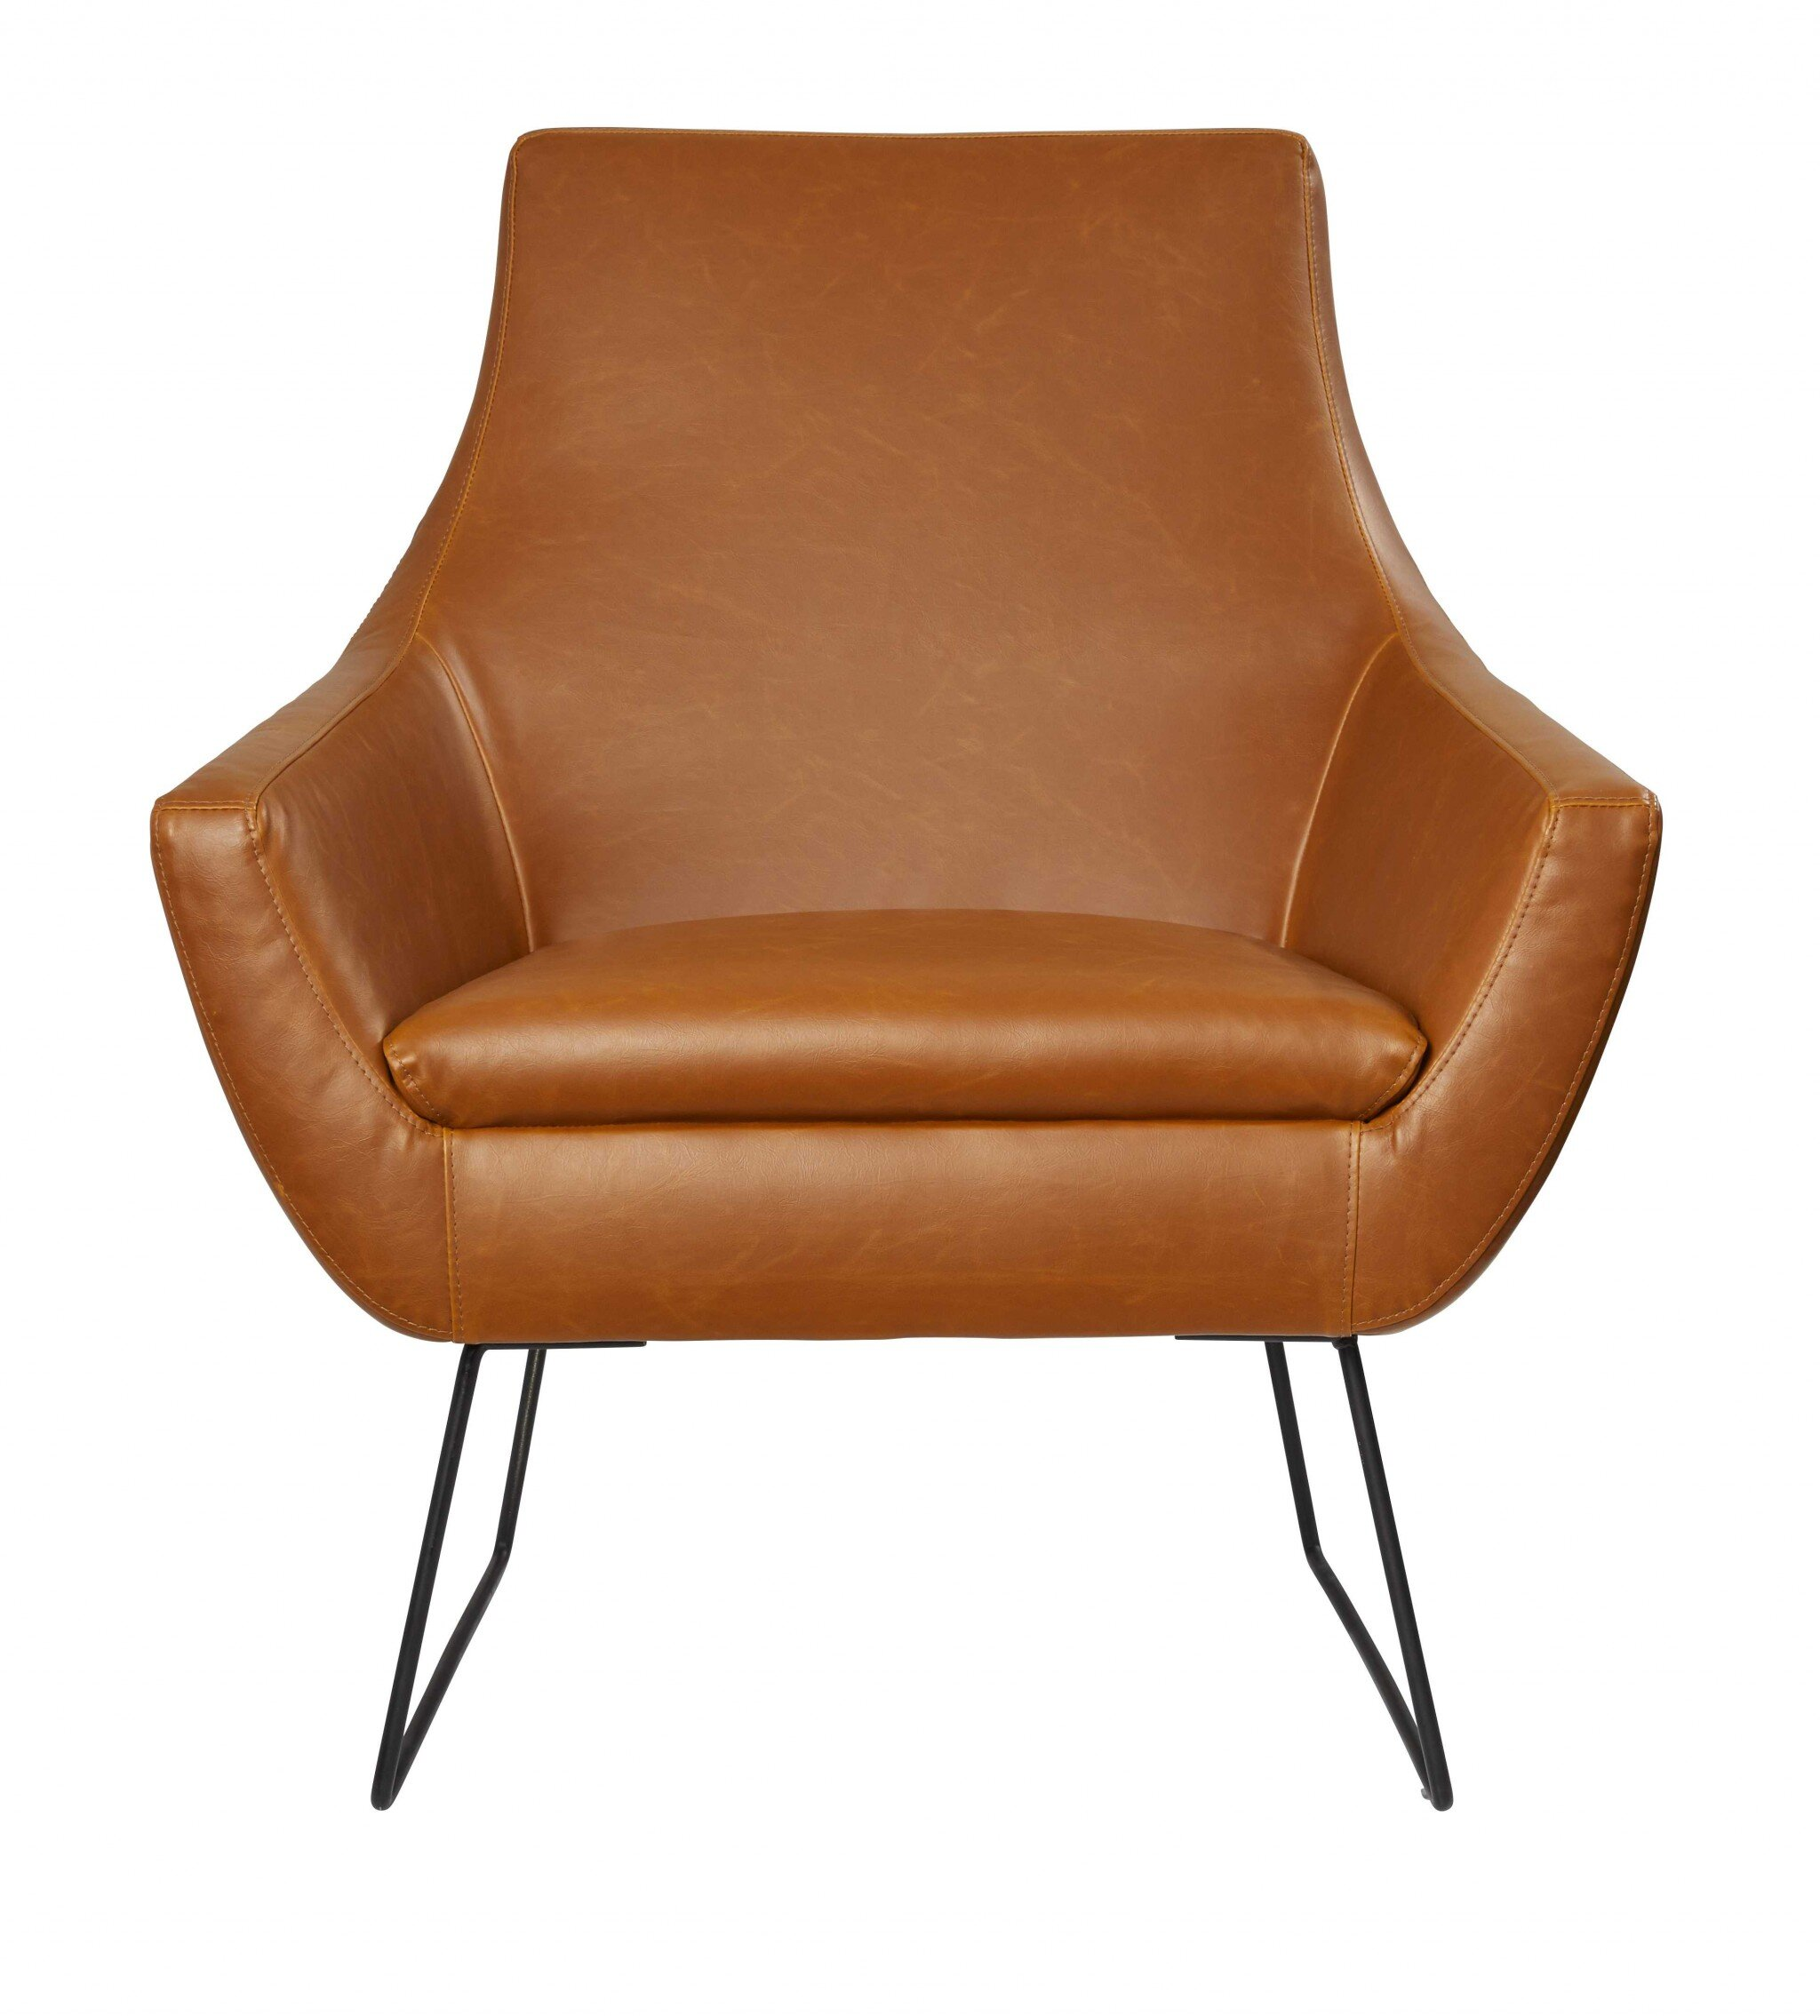 Faux Leather George Oliver Small Accent Chairs You Ll Love In 2021 Wayfair